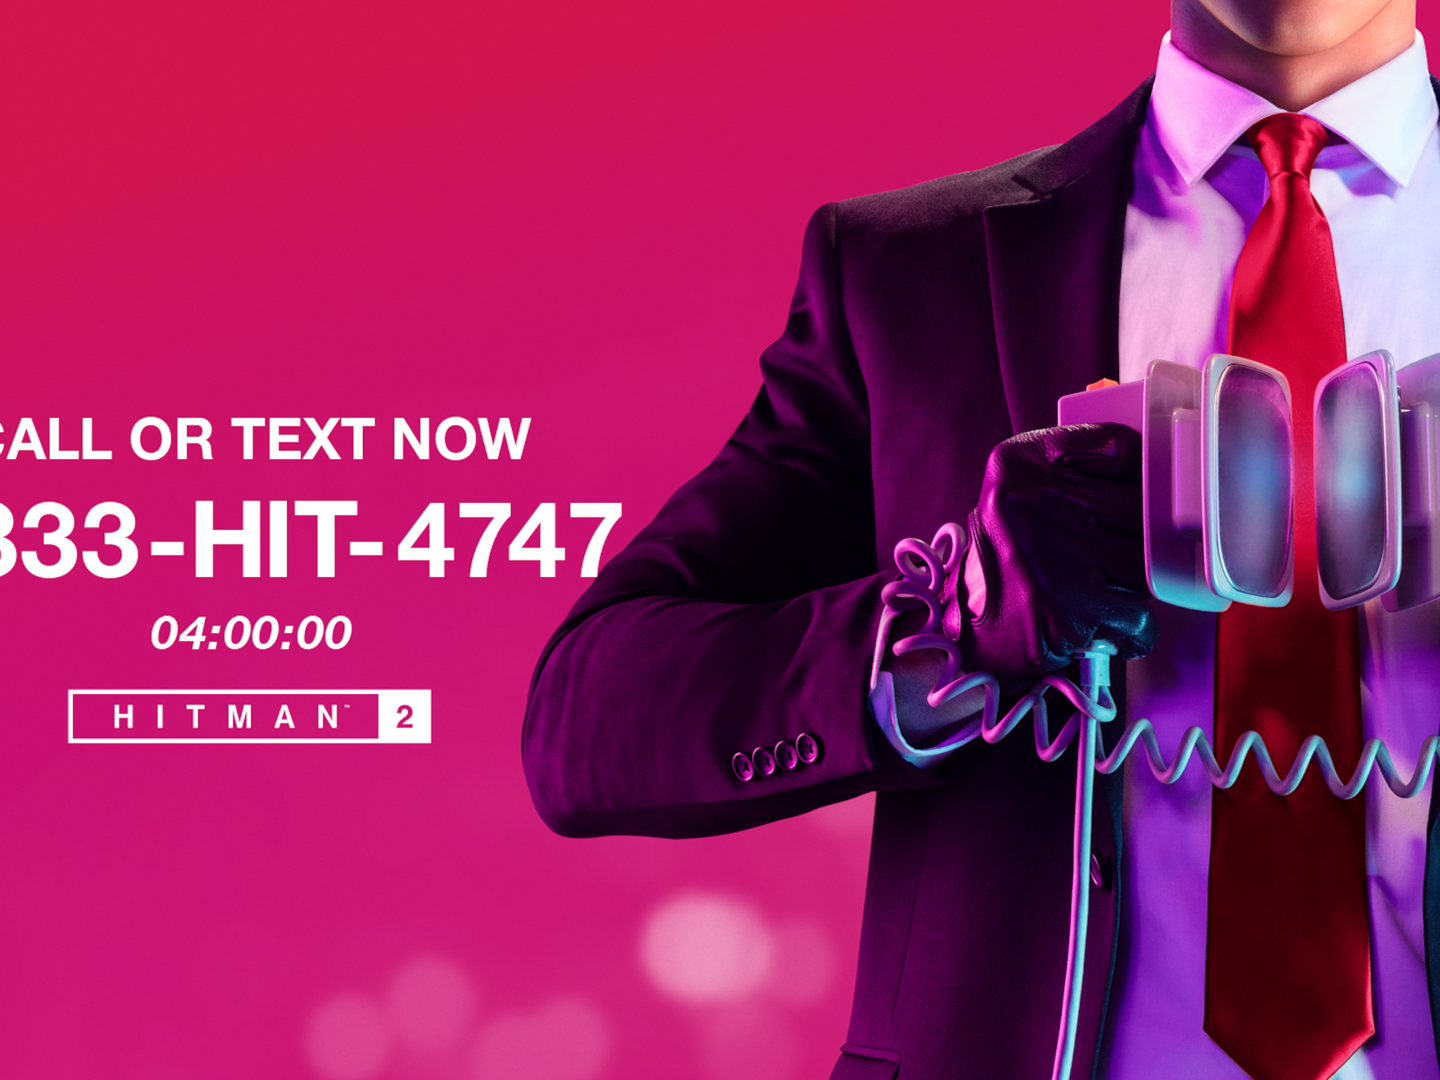 HITMAN 2 Call Center Thumbnail